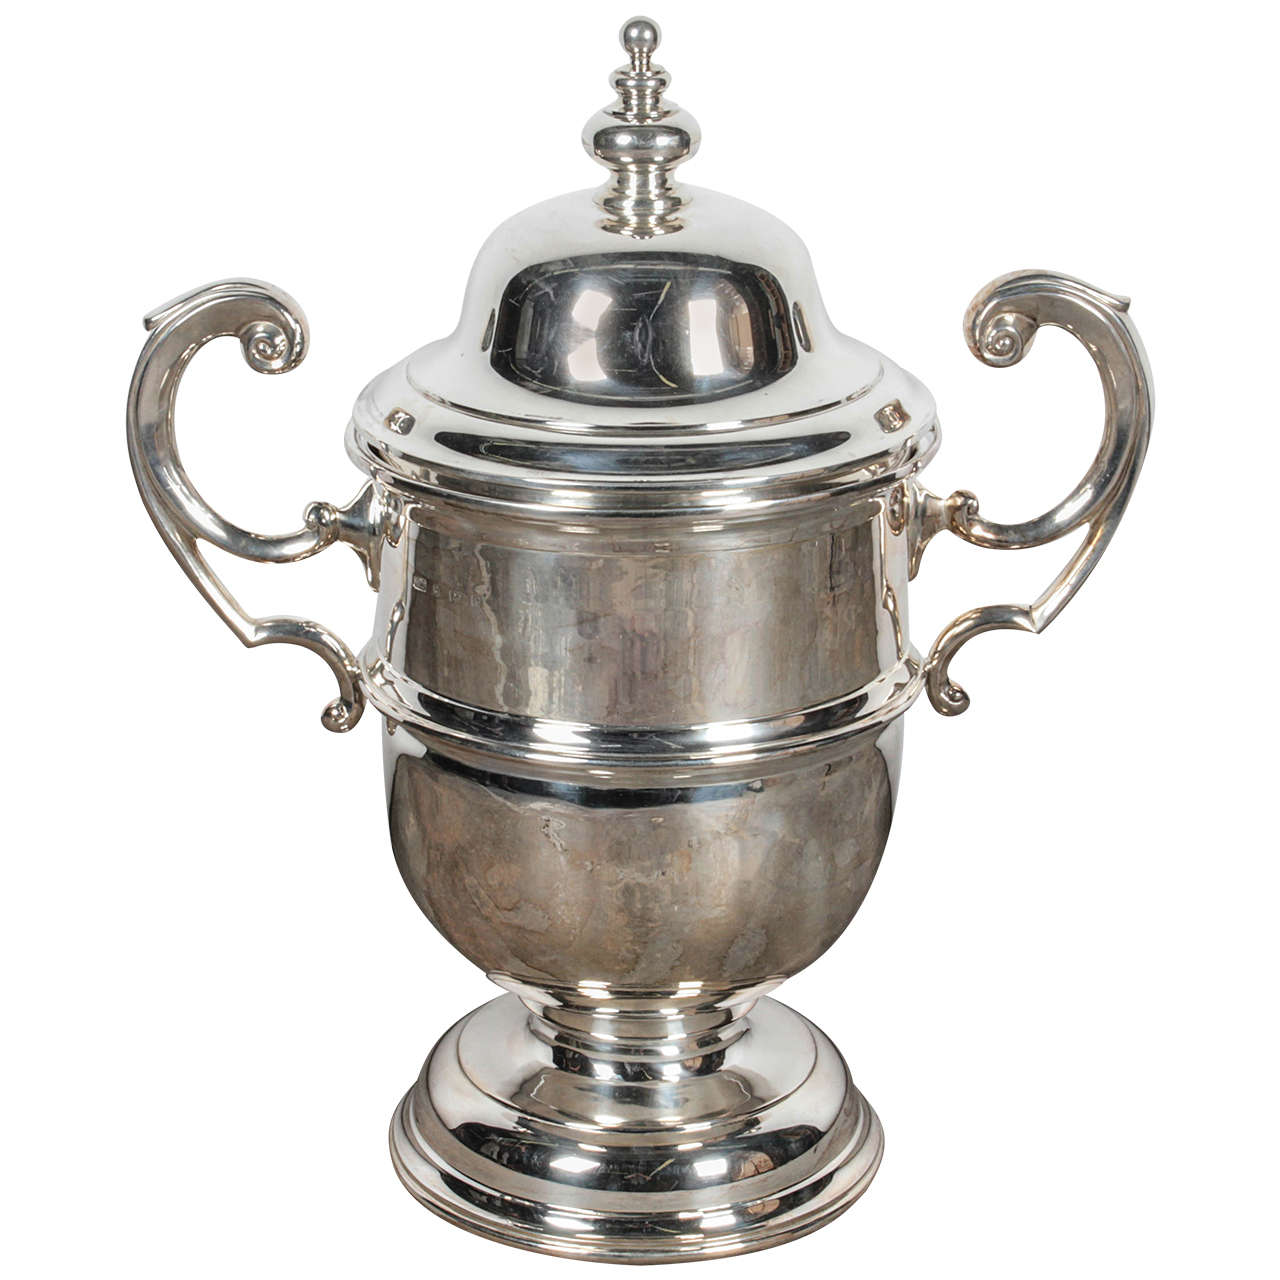 1930 English Silver Trophy Cup with Lid